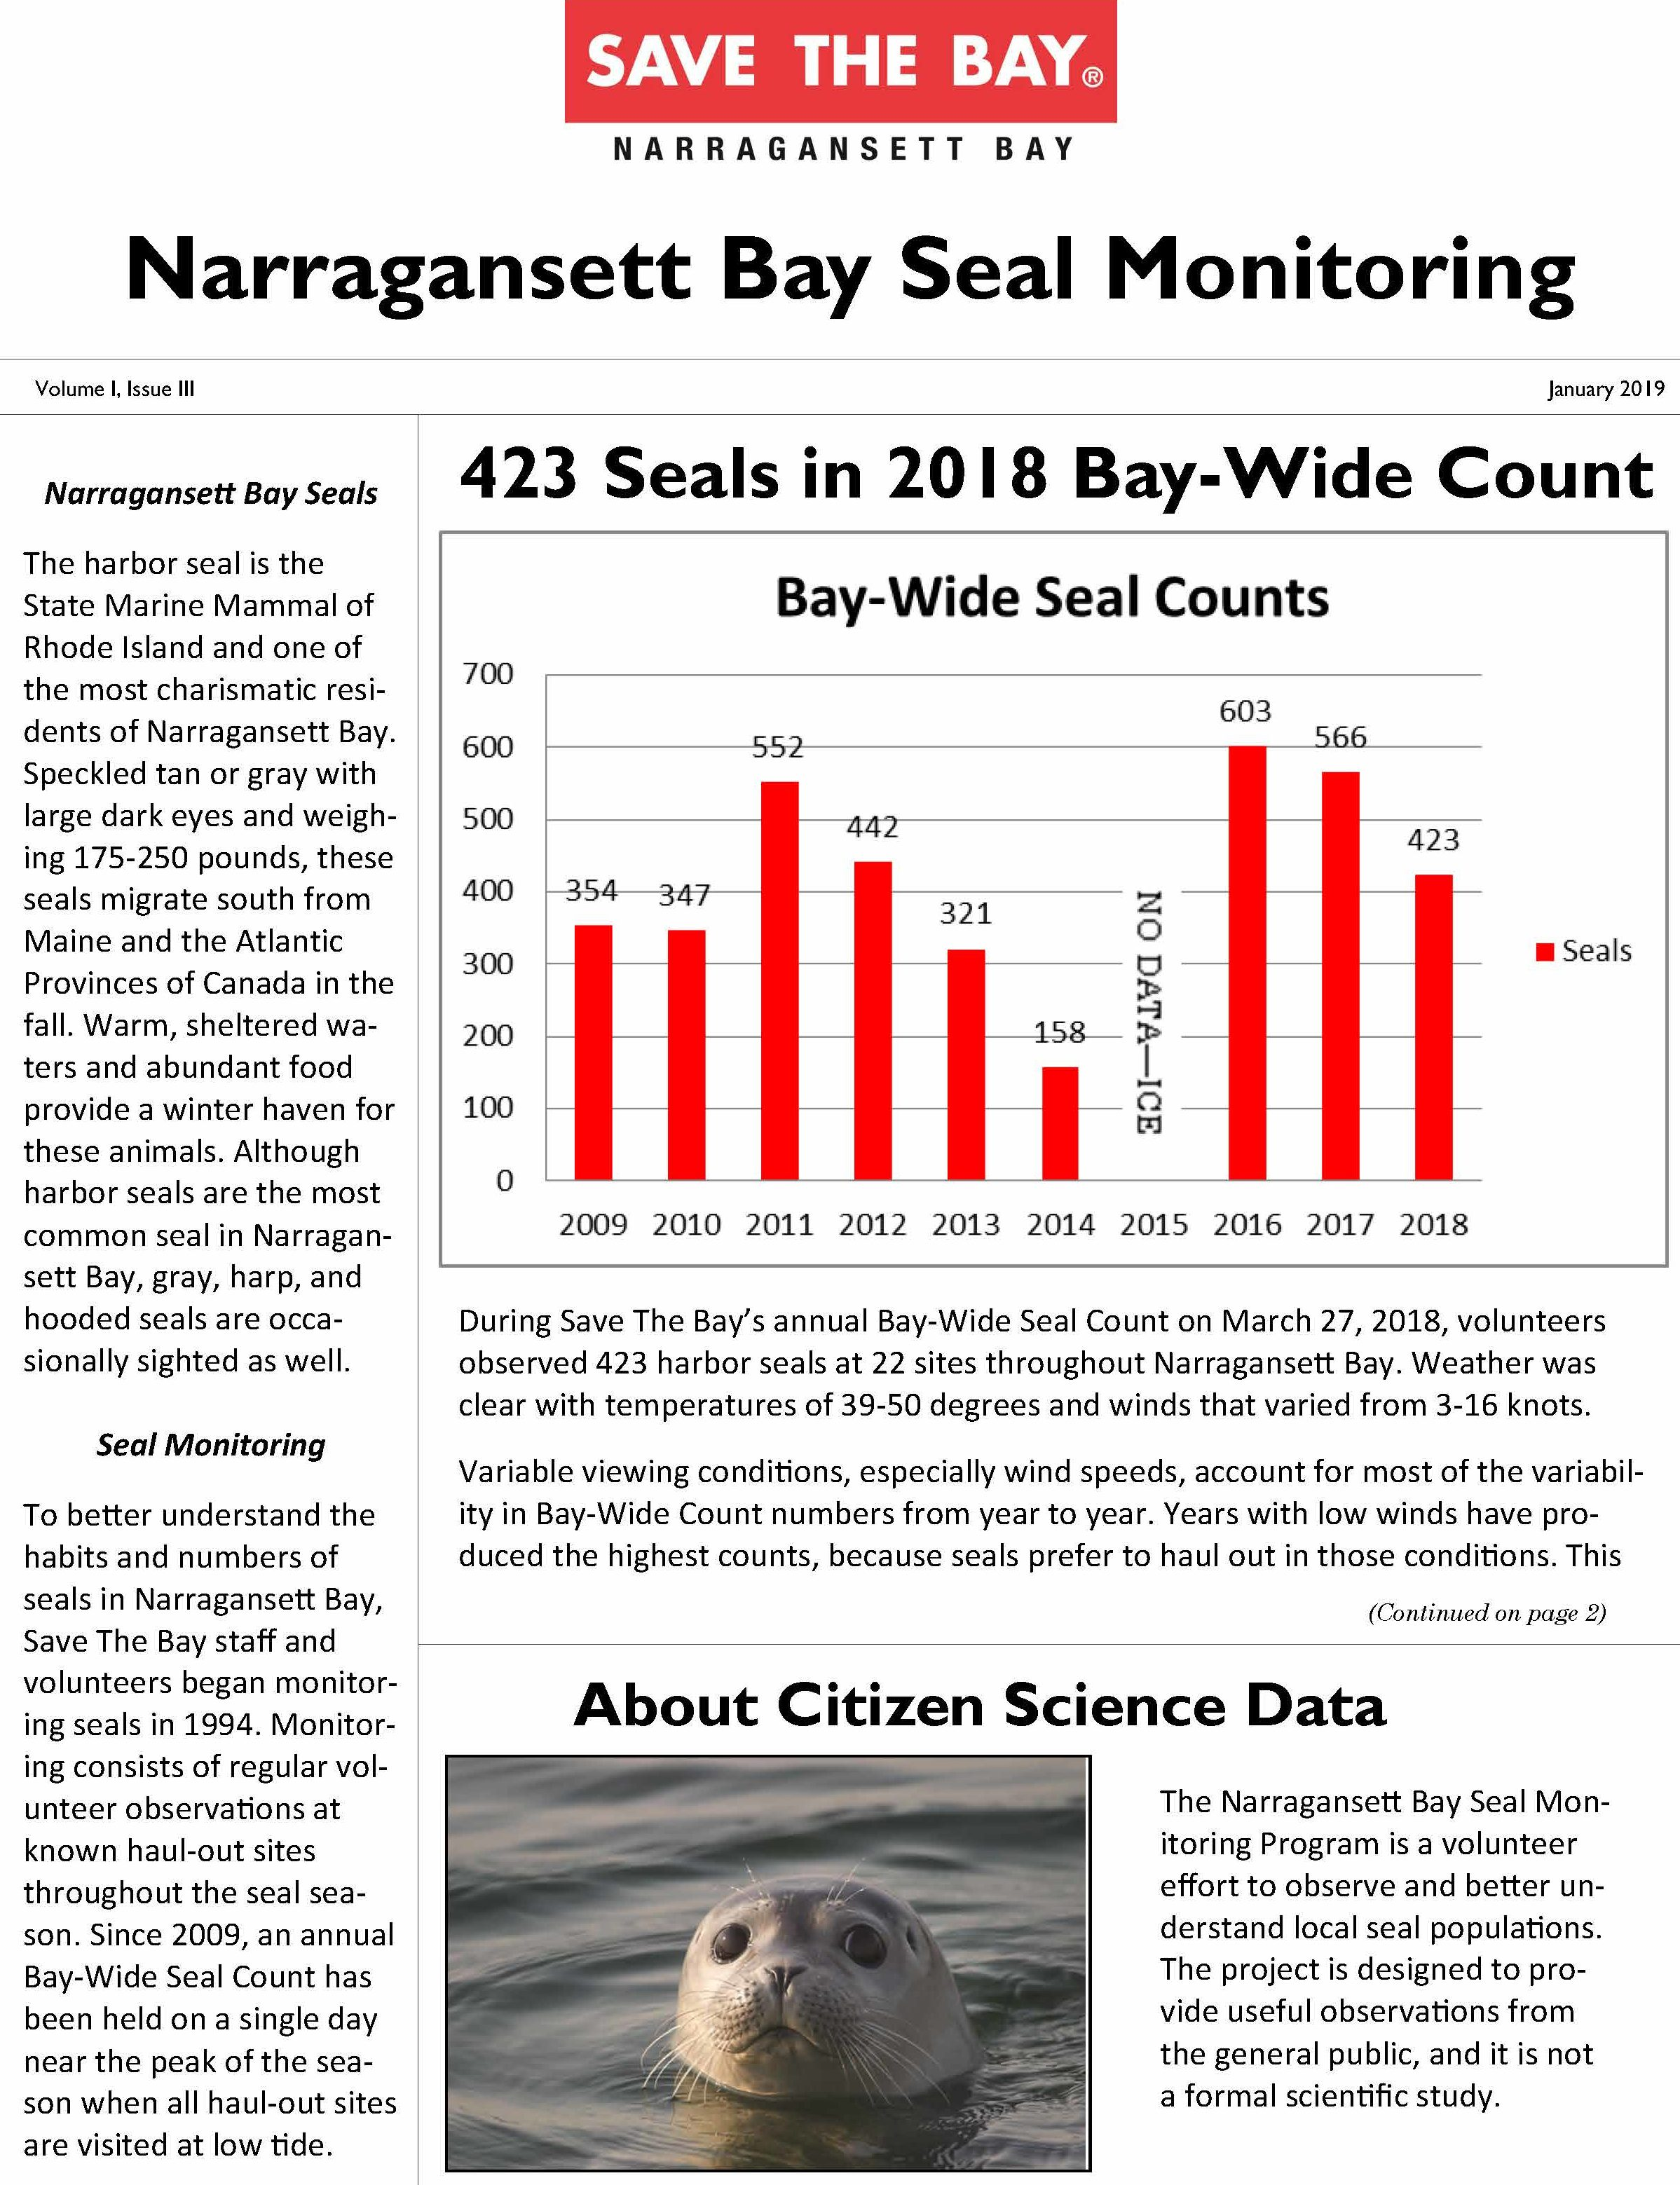 The cover page of the 2018 Narragansett Bay Seal Monitoring Report